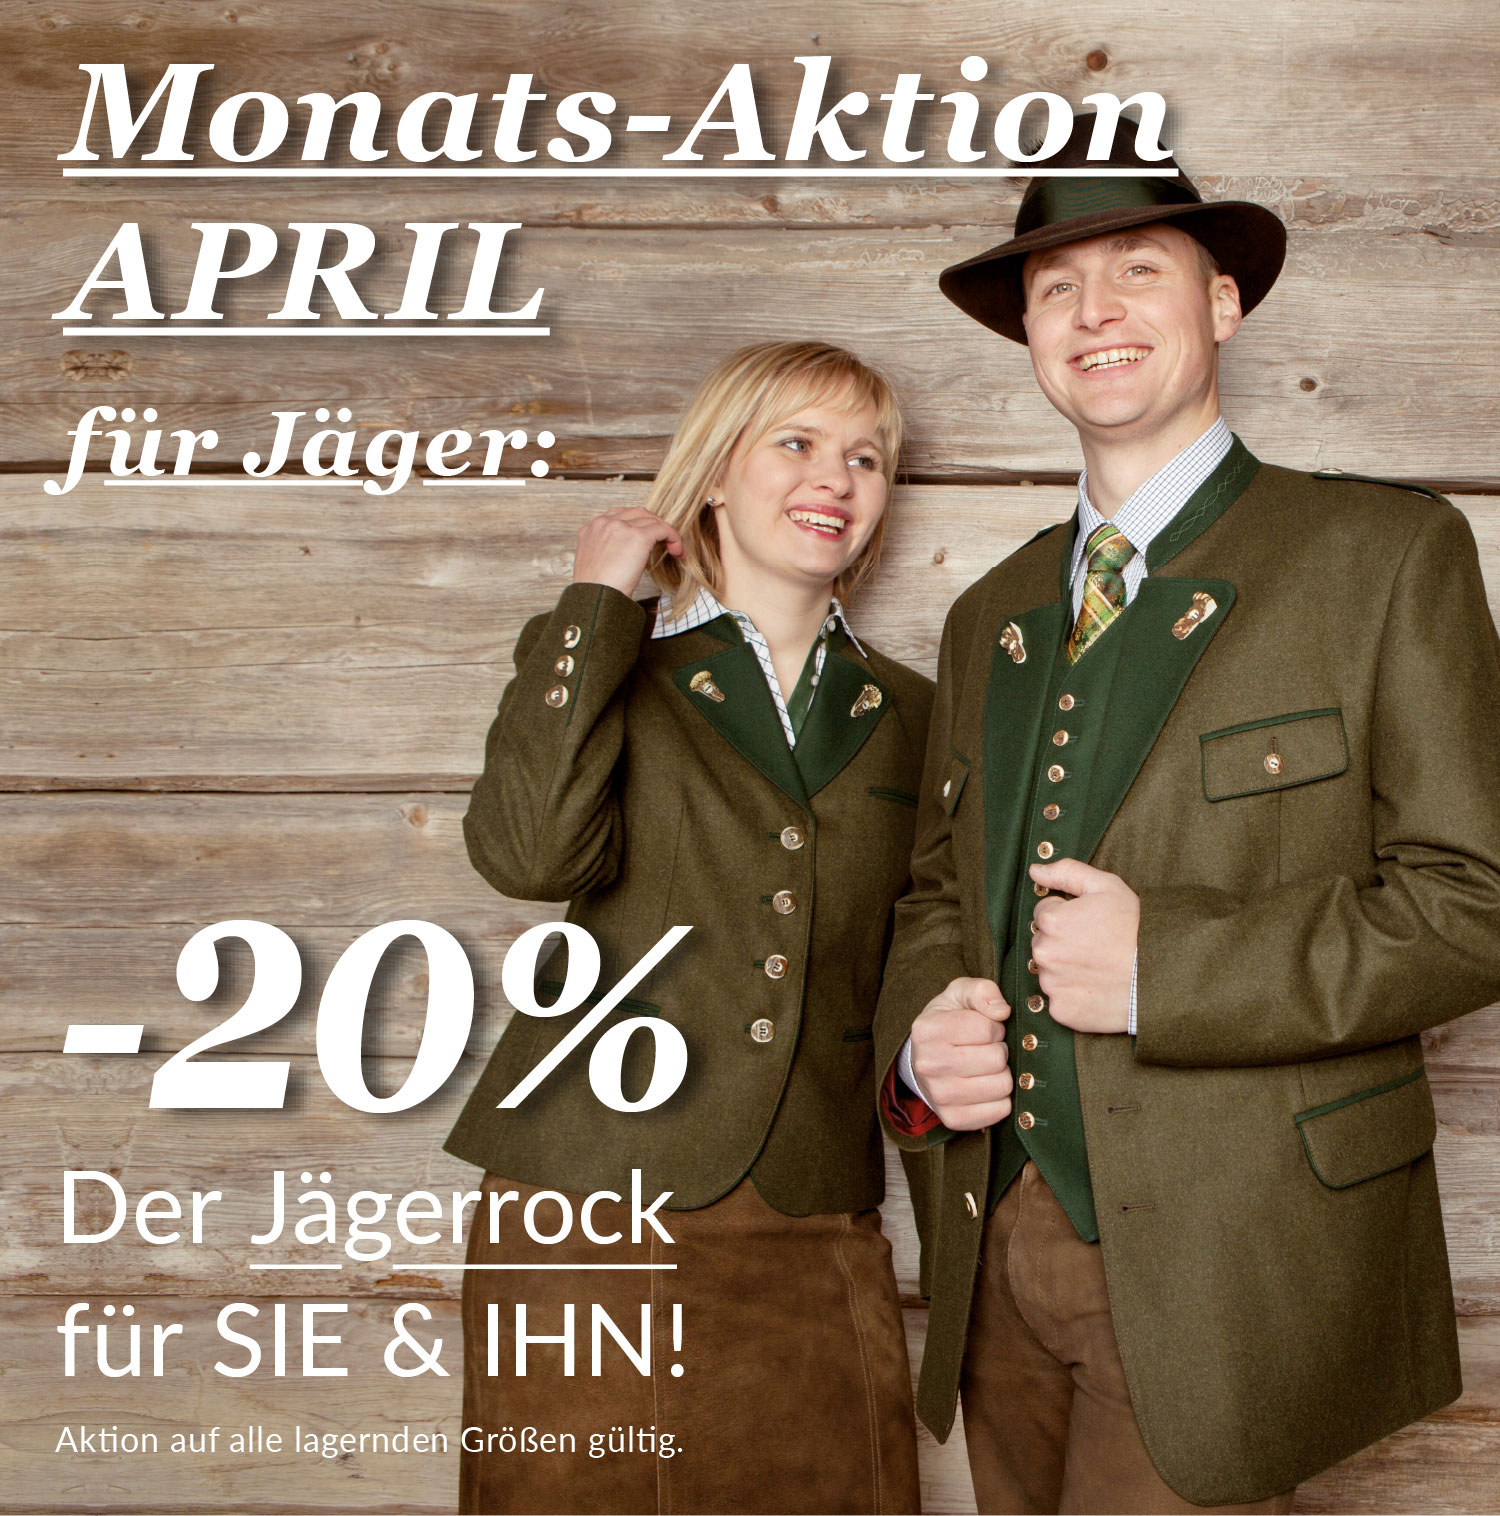 Banner_Monats-Aktion-April_web